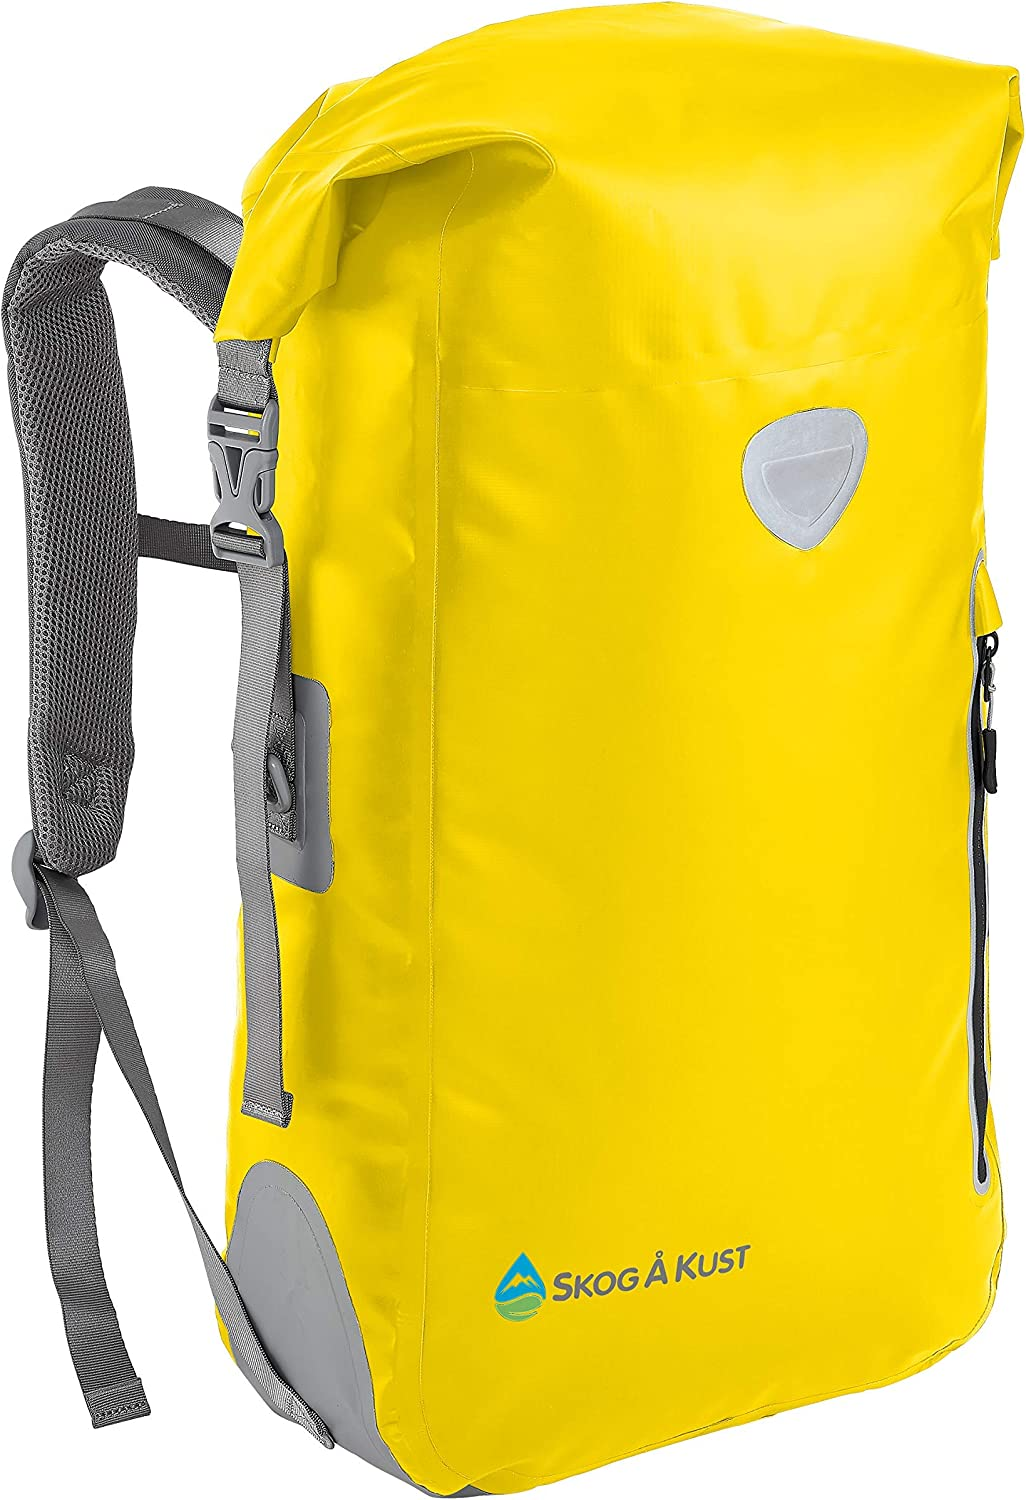 Skog Å Kust BackSåk Waterproof Floating Backpack with Exterior Zippered Pocket | for Kayaking, Rafting, Boating, Swimming, Camping, Hiking, Beach, Fishing | 25L & 35L Sizes